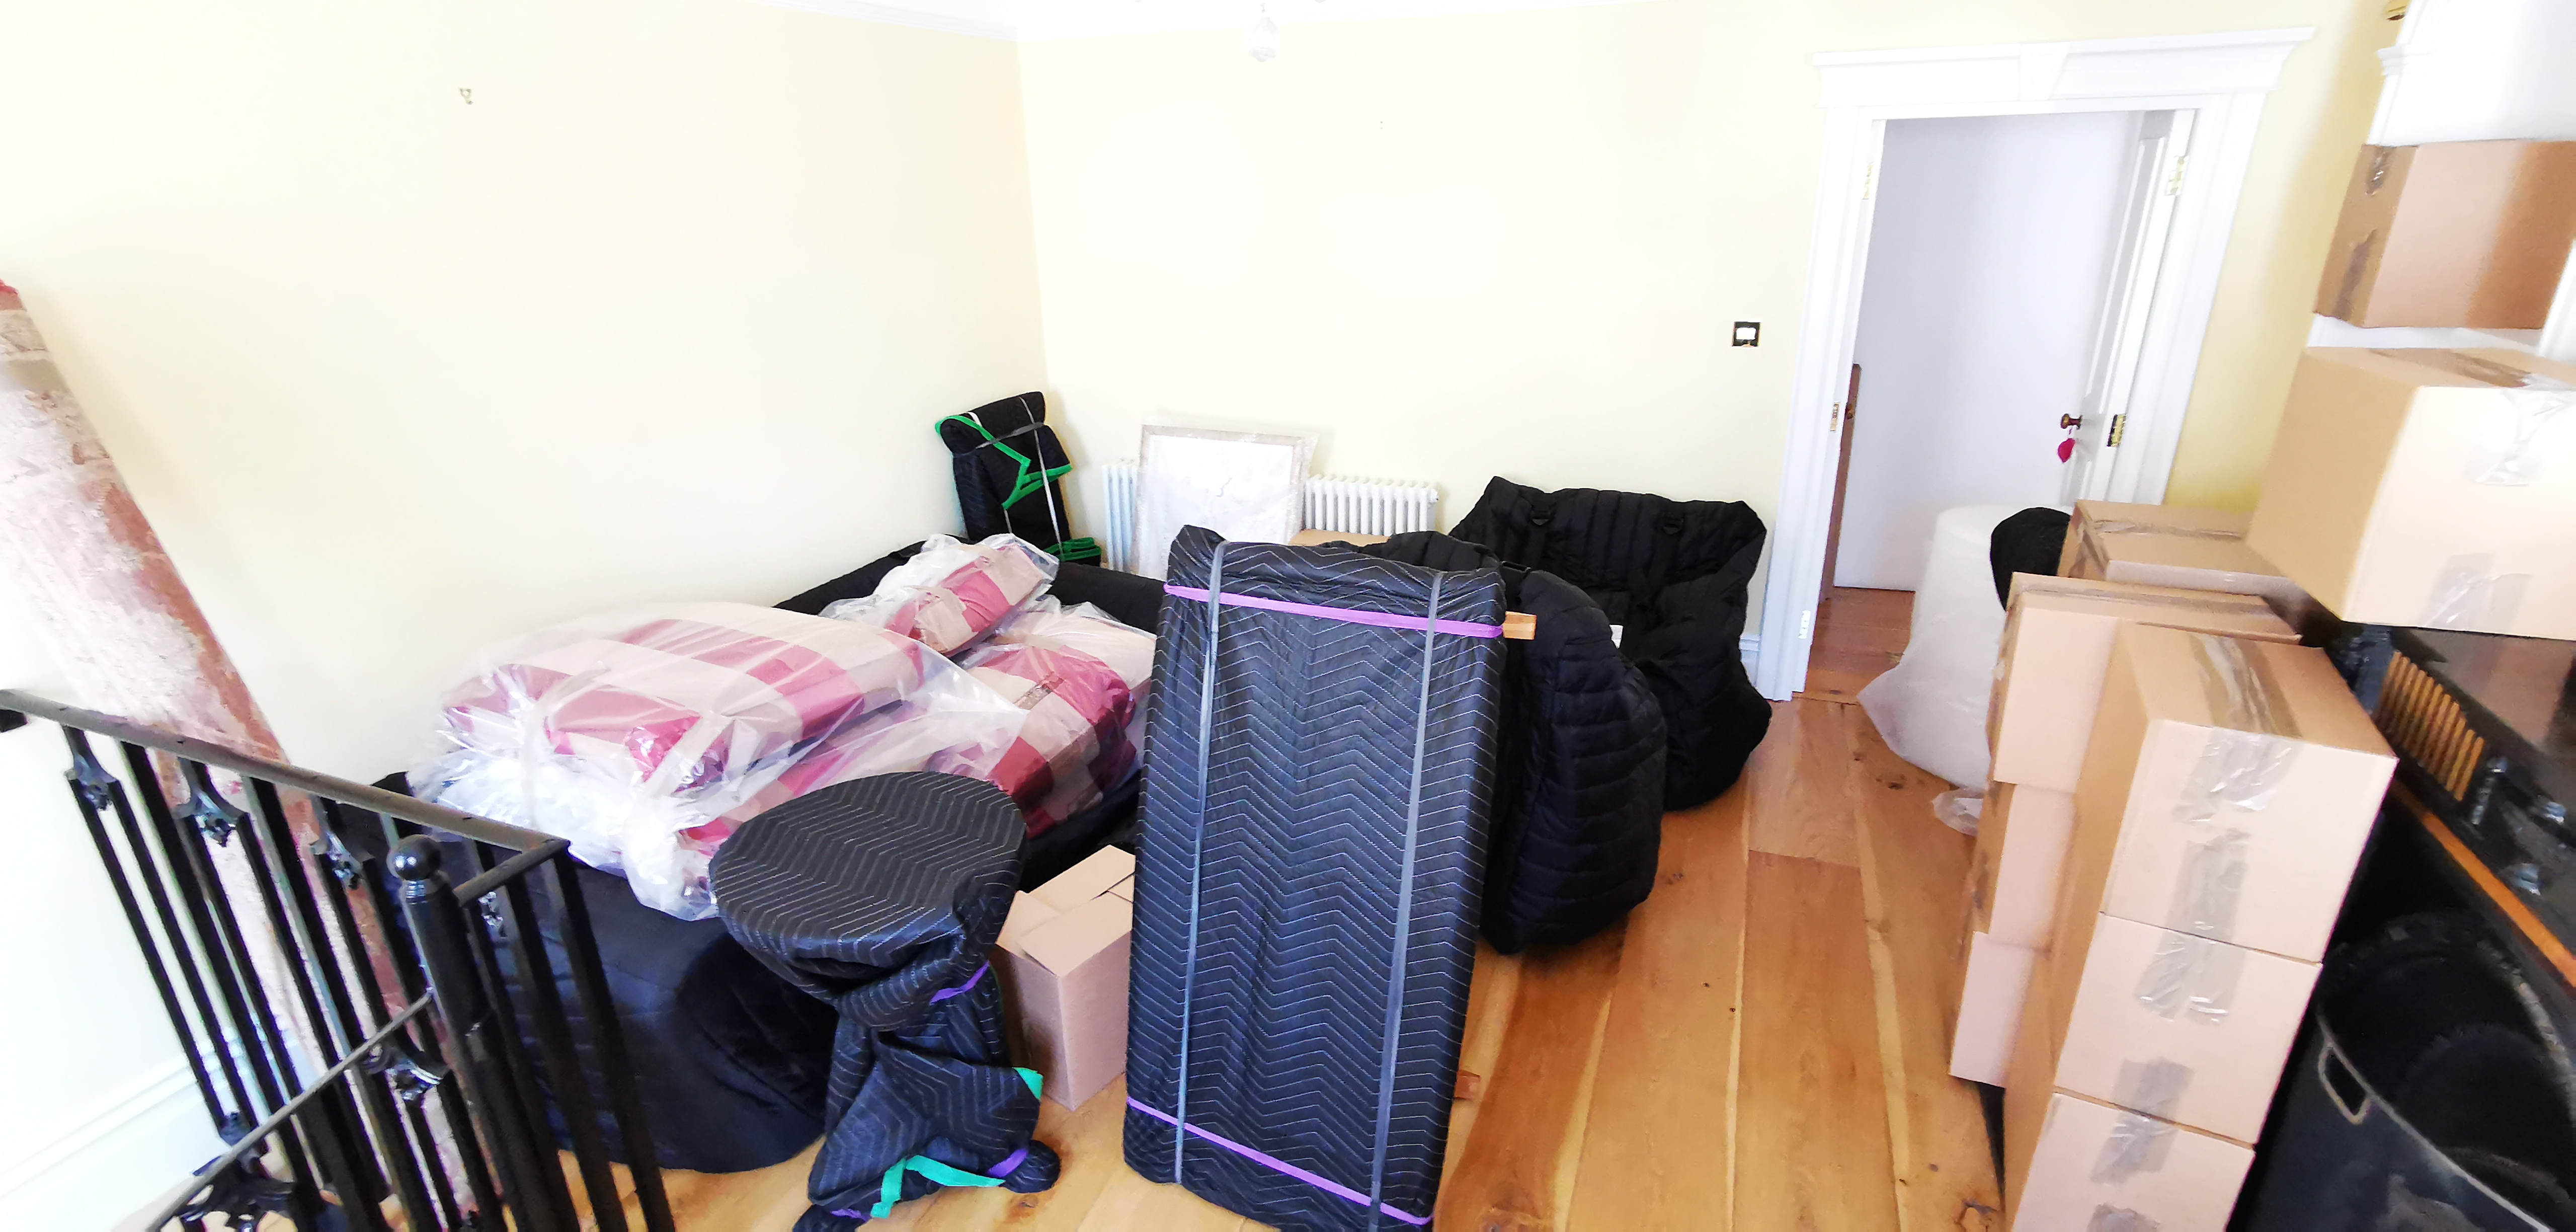 Packing services in Hounslow